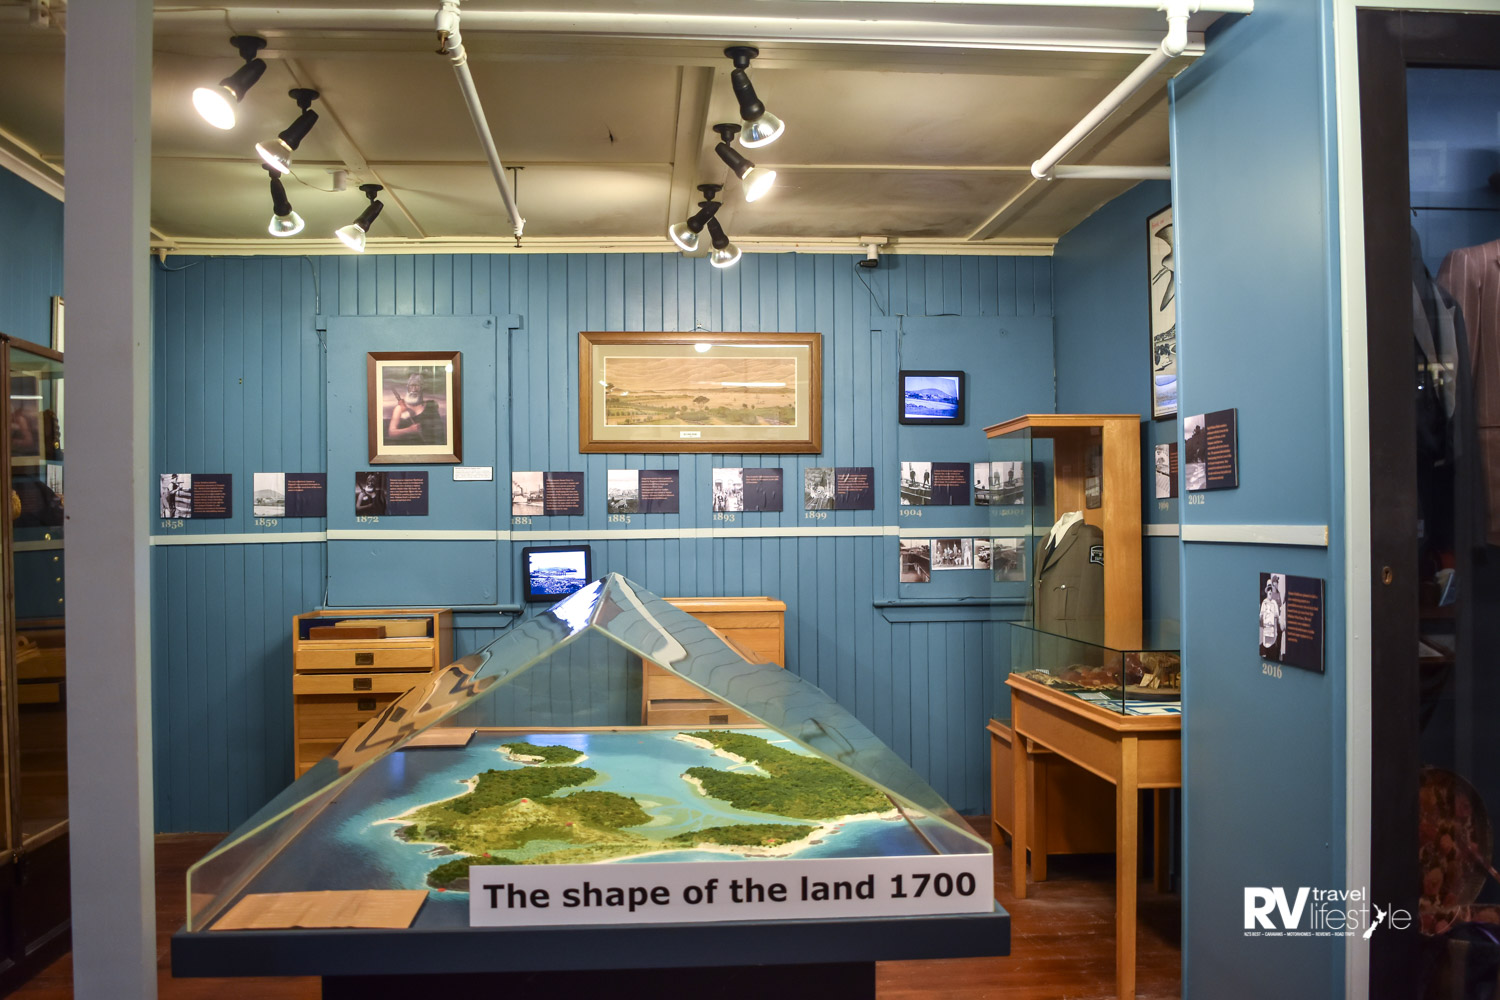 The first exhibit is a room detailing the timeline of Devonport history